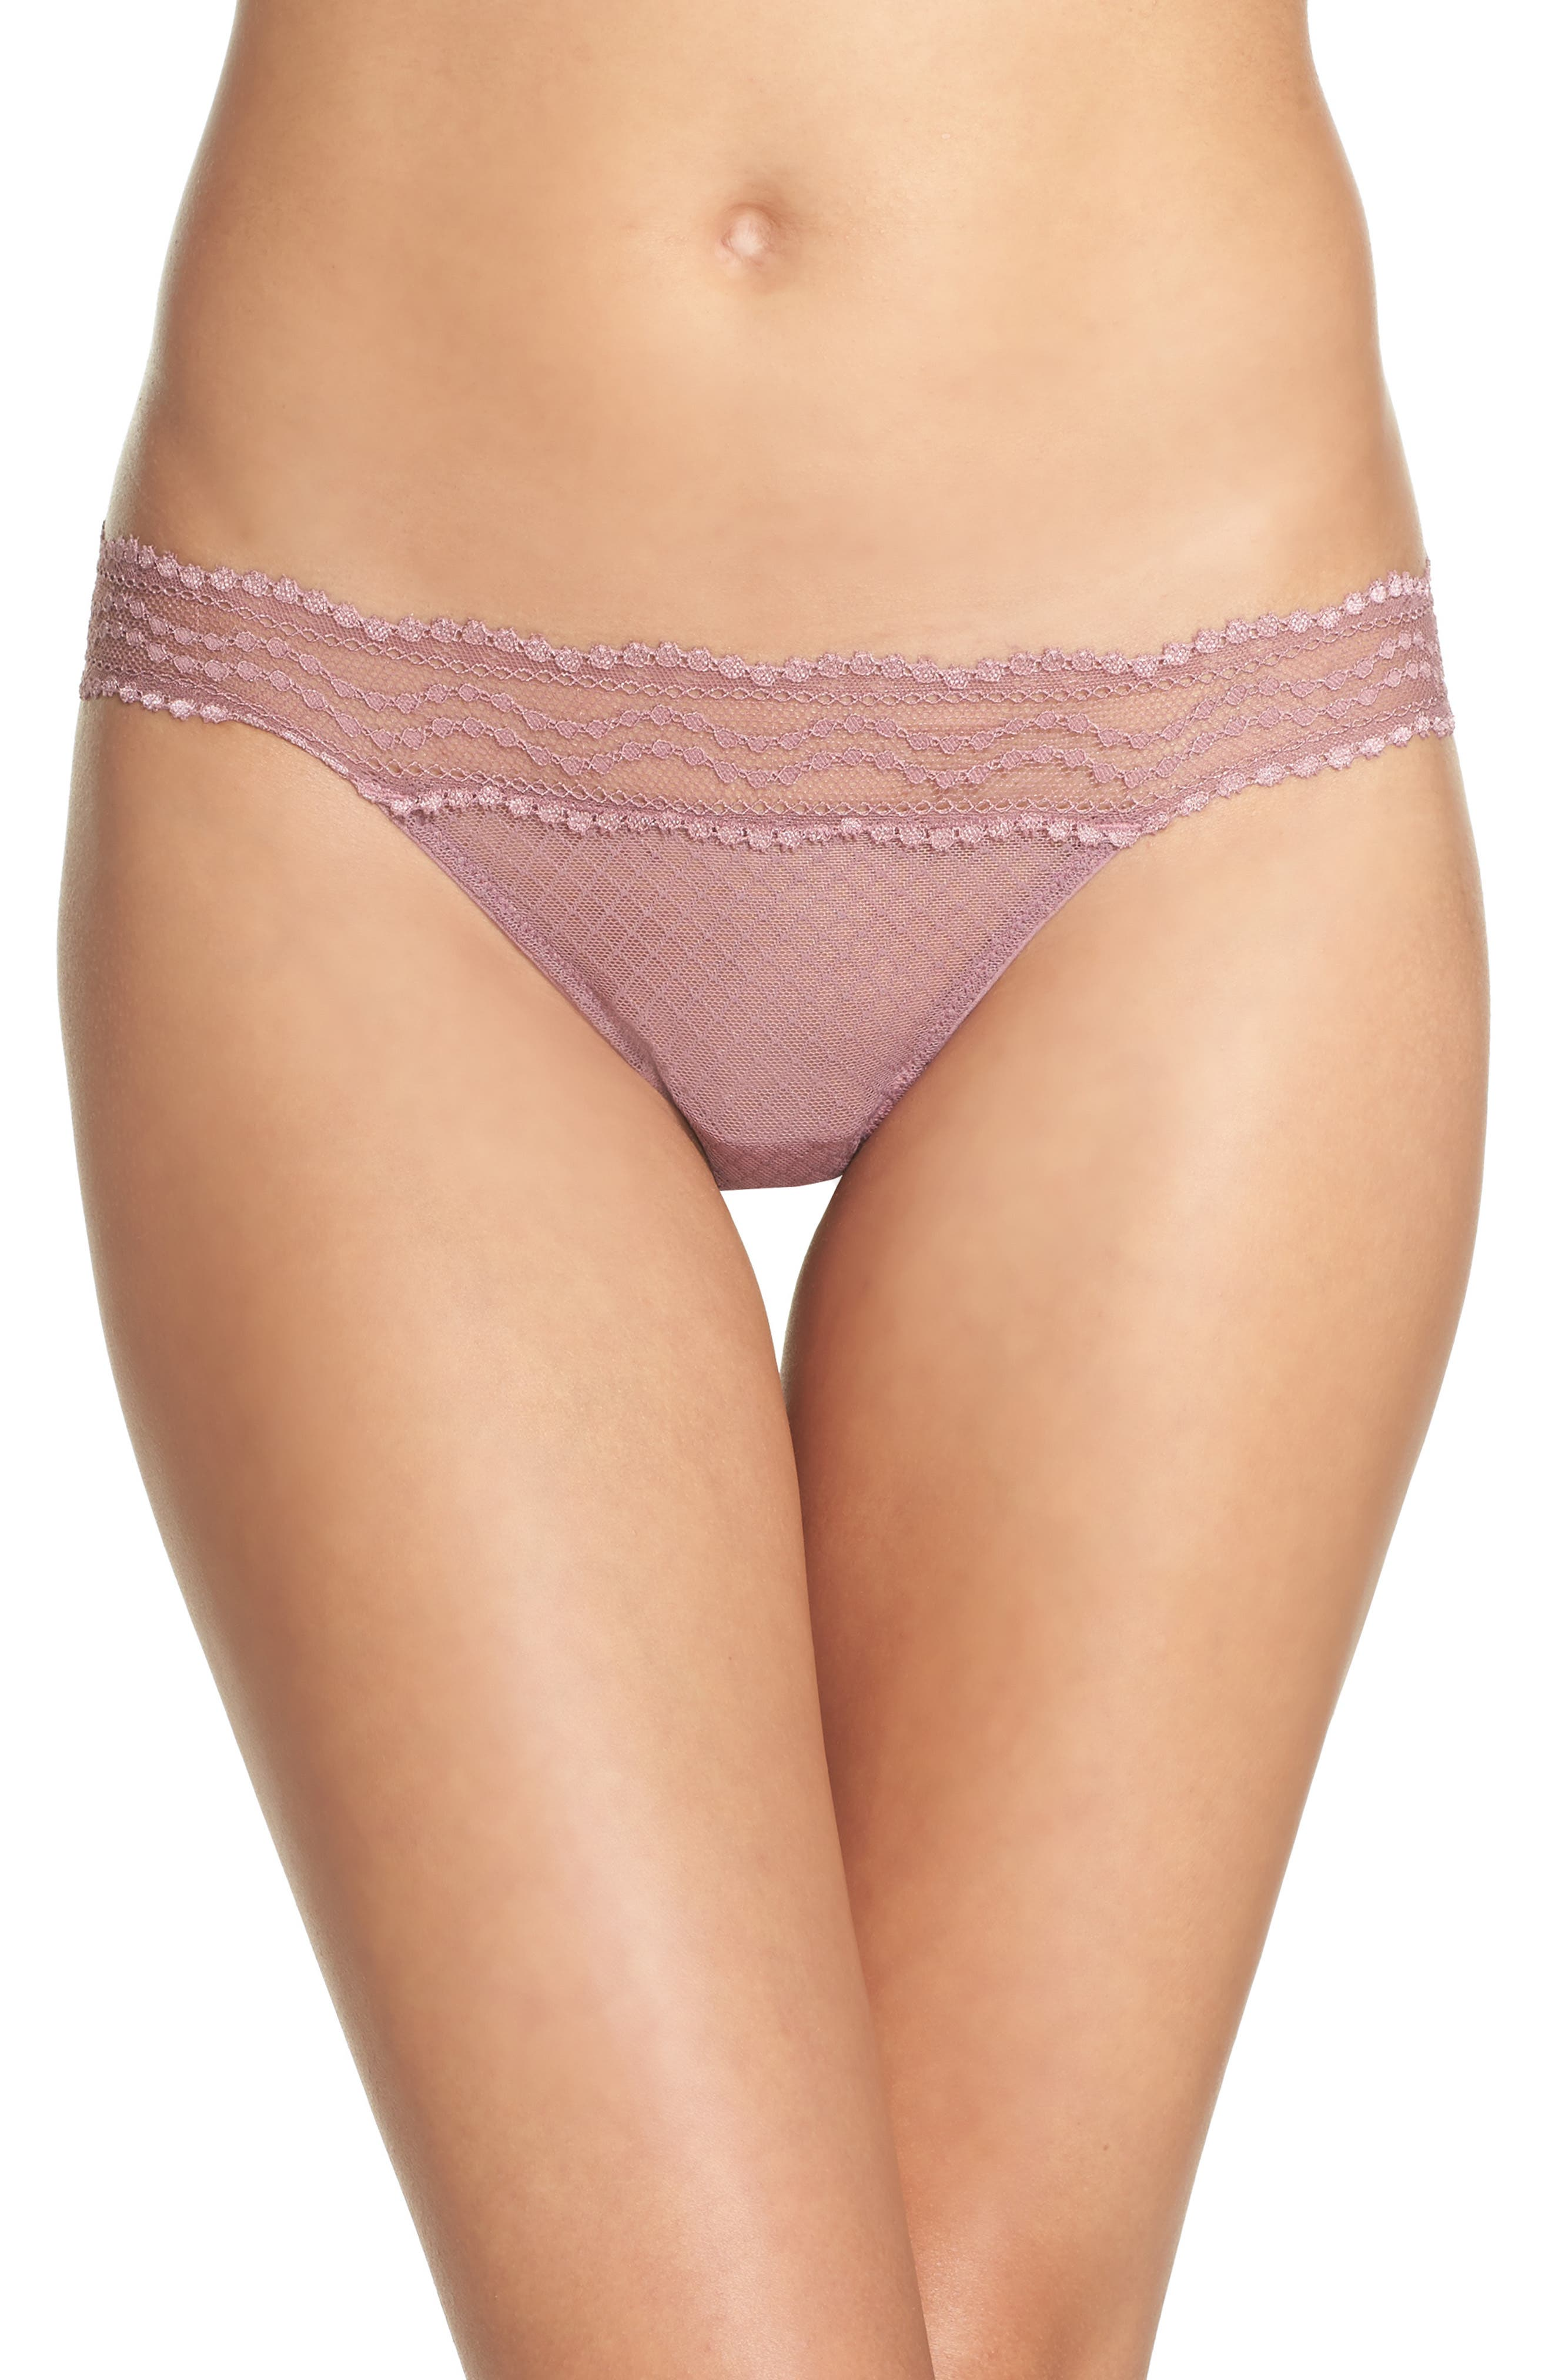 Alternate Image 1 Selected - Vince Camuto Colette Thong (3 for $33)